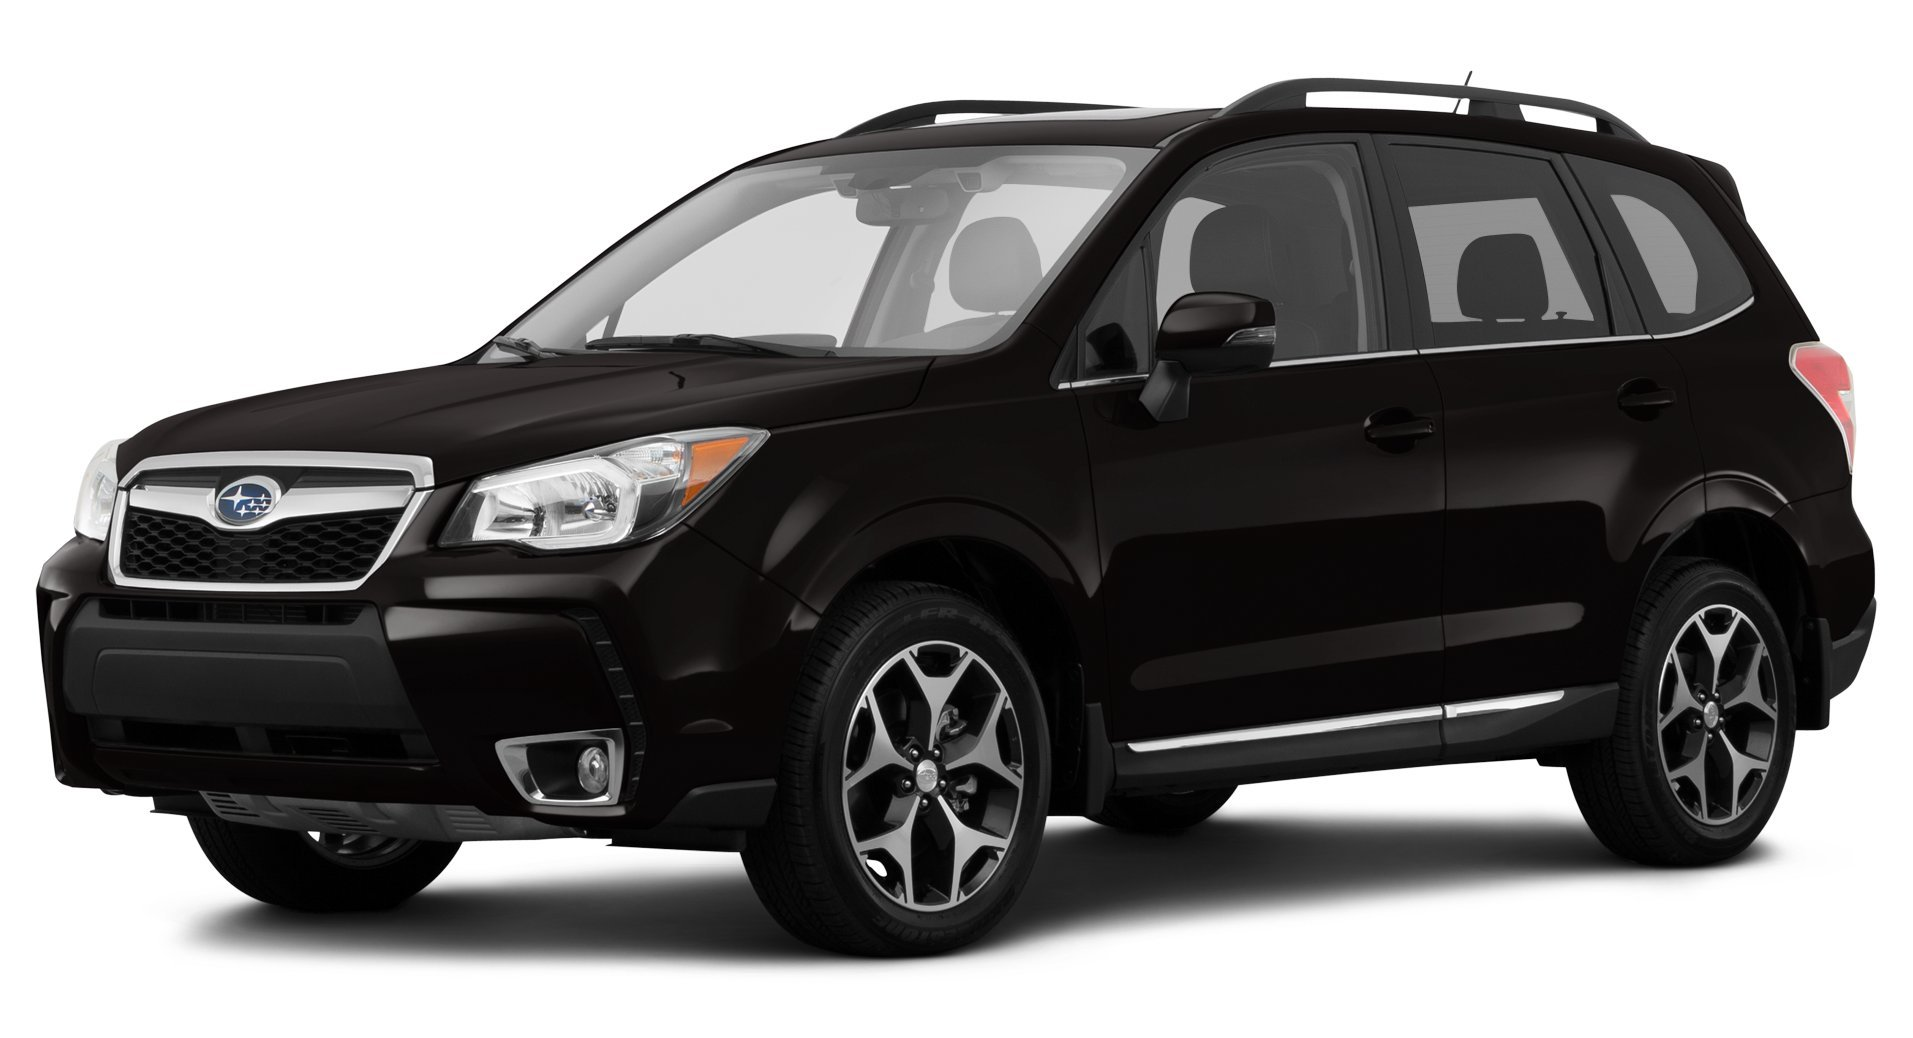 2015 subaru forester reviews images and specs vehicles. Black Bedroom Furniture Sets. Home Design Ideas